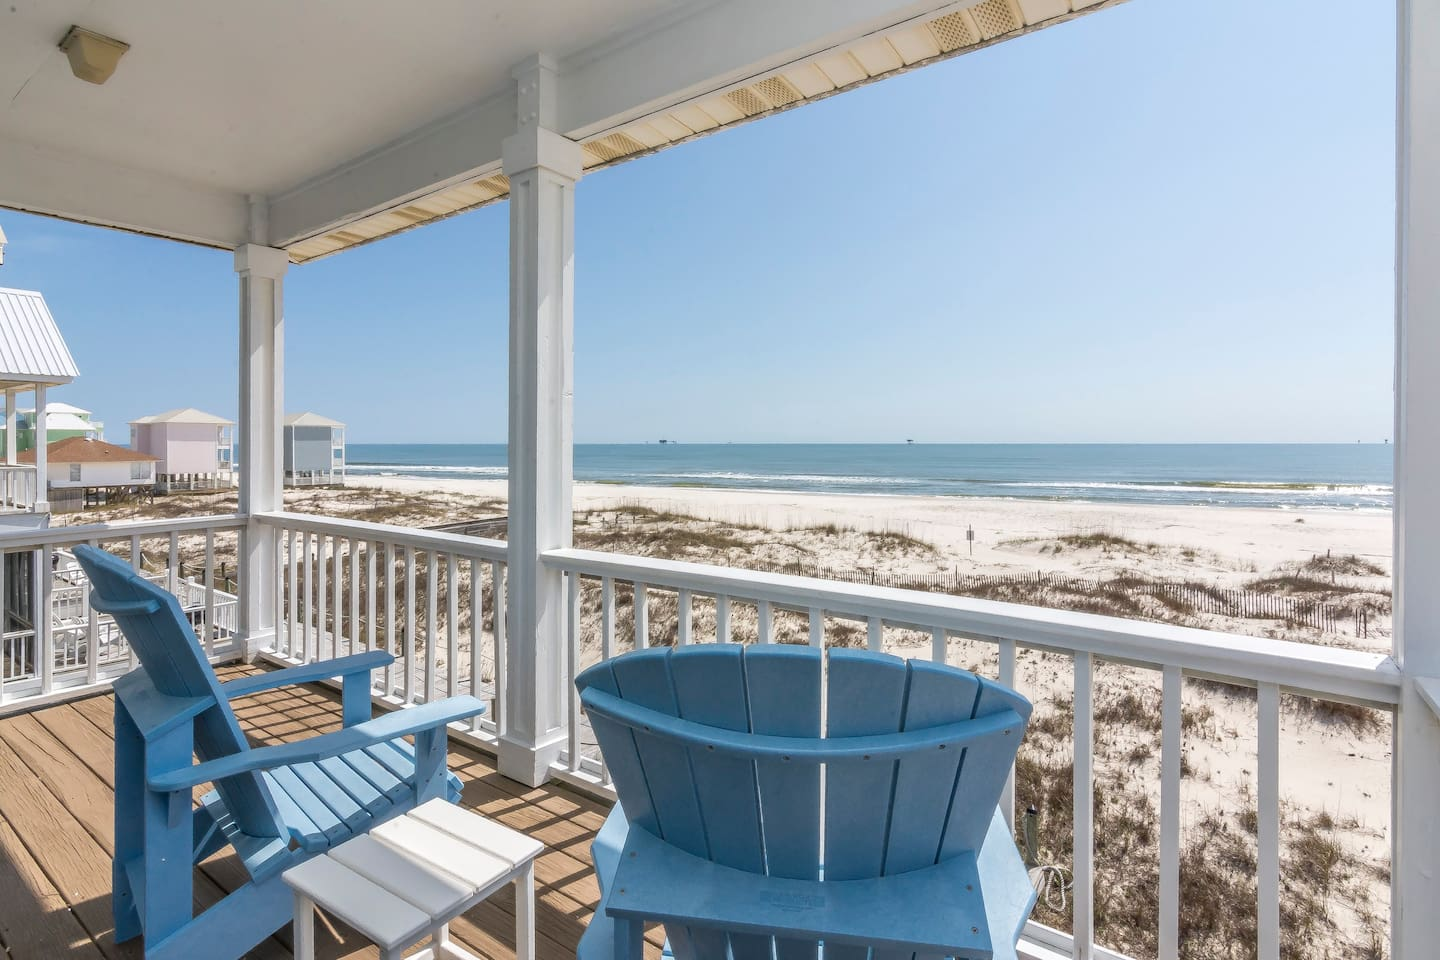 The best beachfront living you can get on the Ft Morgan Peninsula